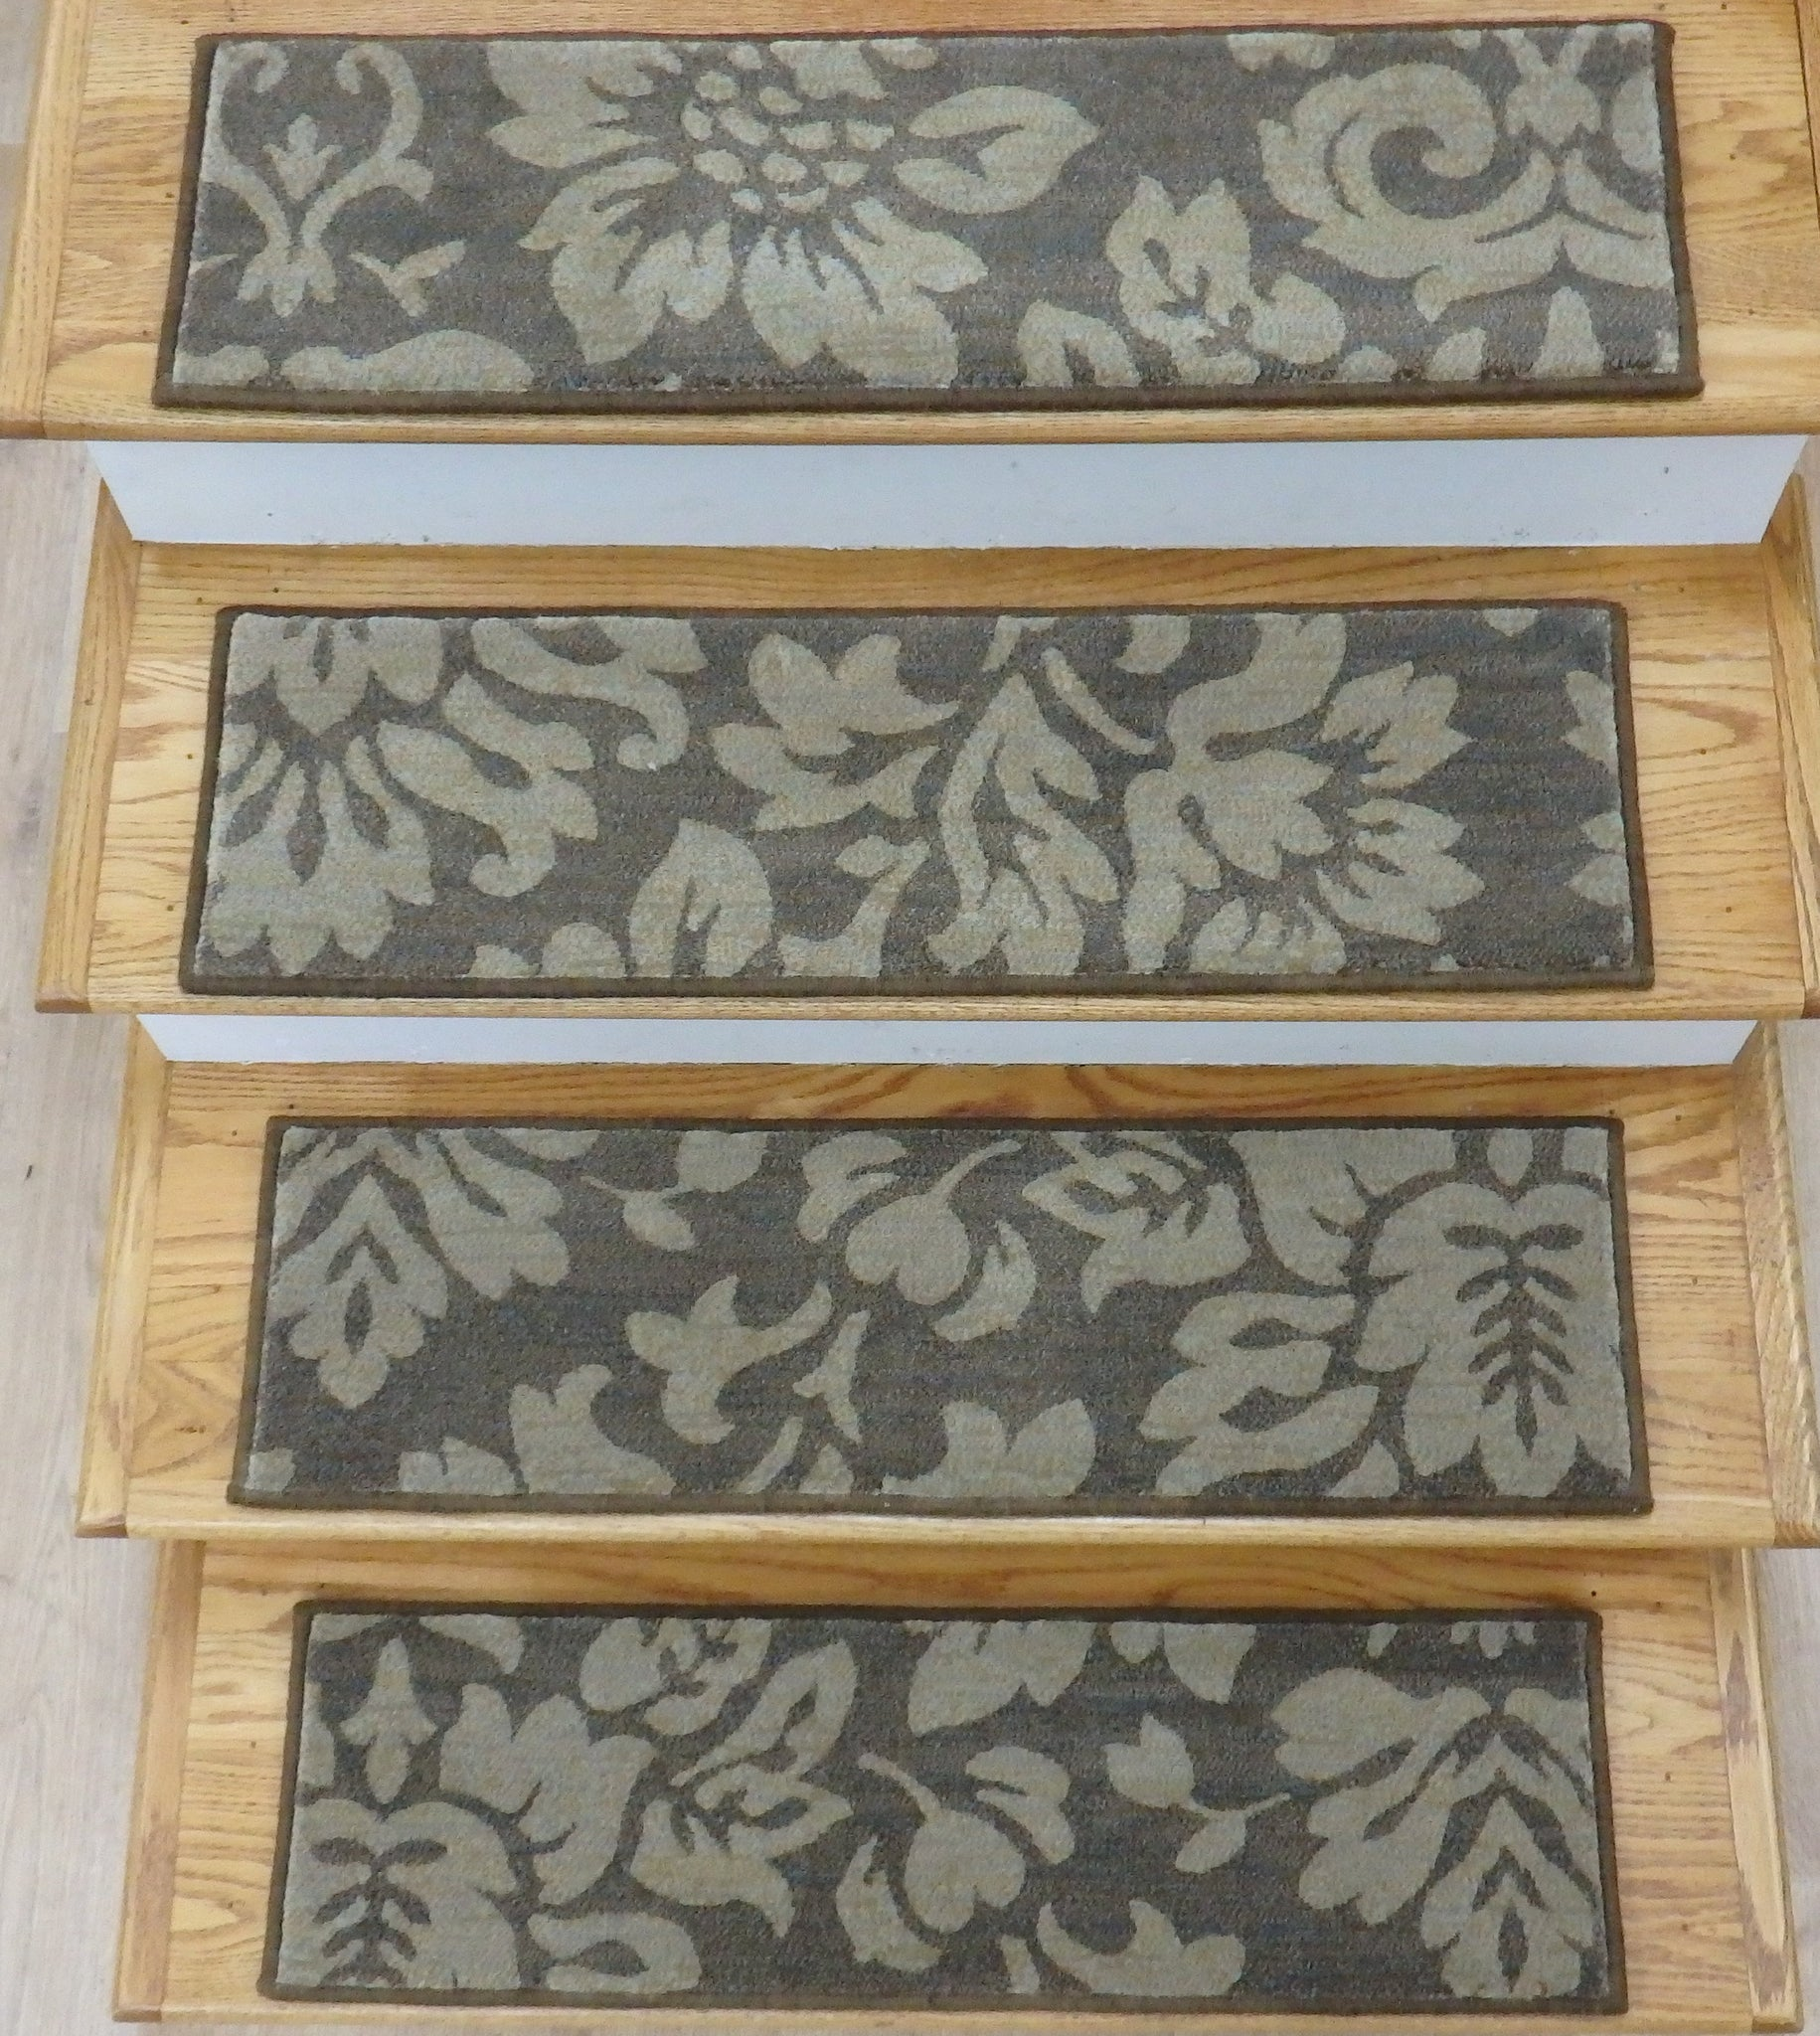 Dynamic Stair Treads Stair Treads Brown 31in x 9in Set of 14Pcs Non Slip Pads Attached